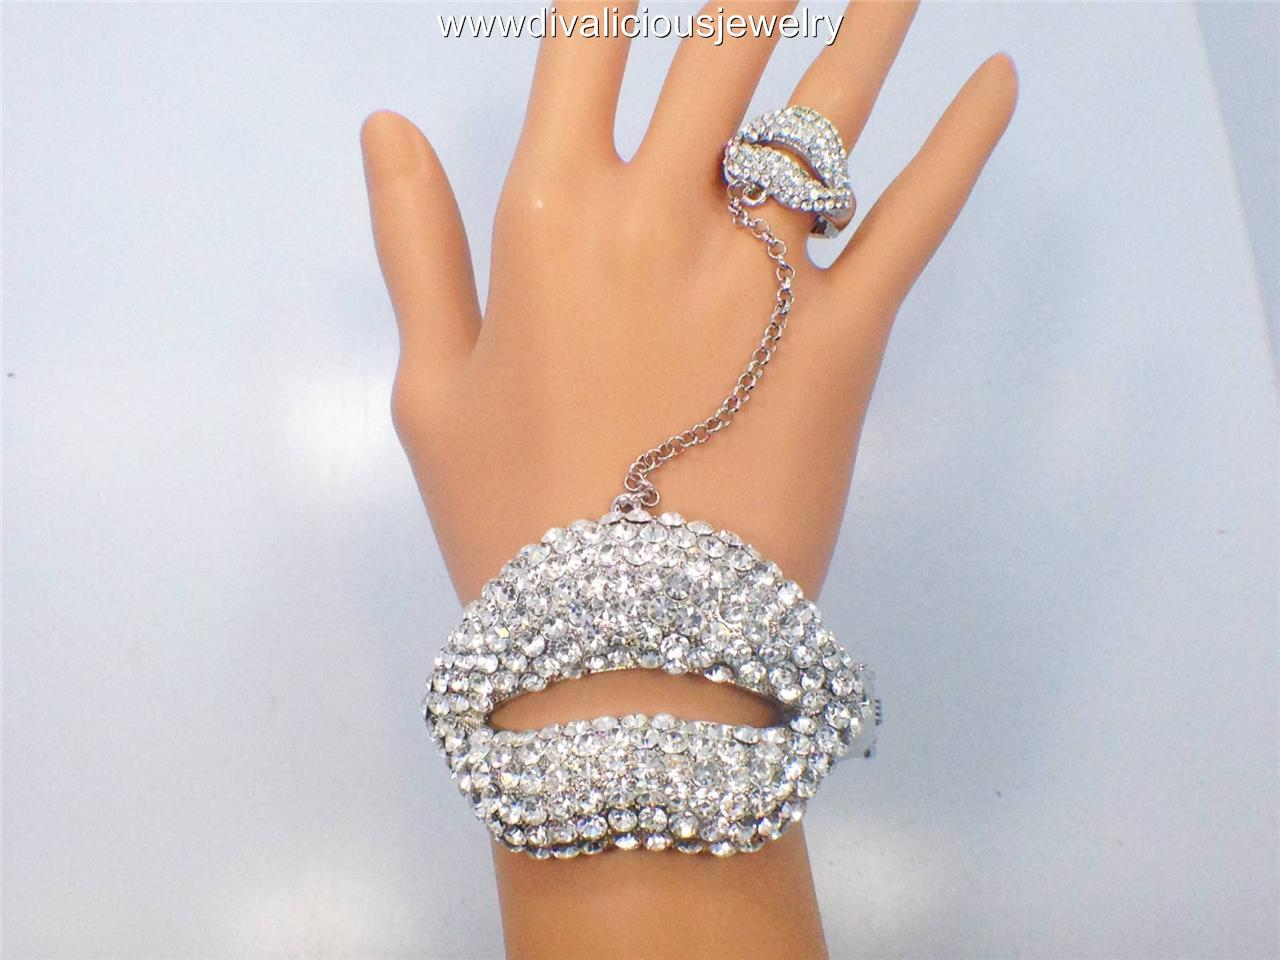 Juicy-Crystal-Lip-slave-ring-bracelet-3-Colors